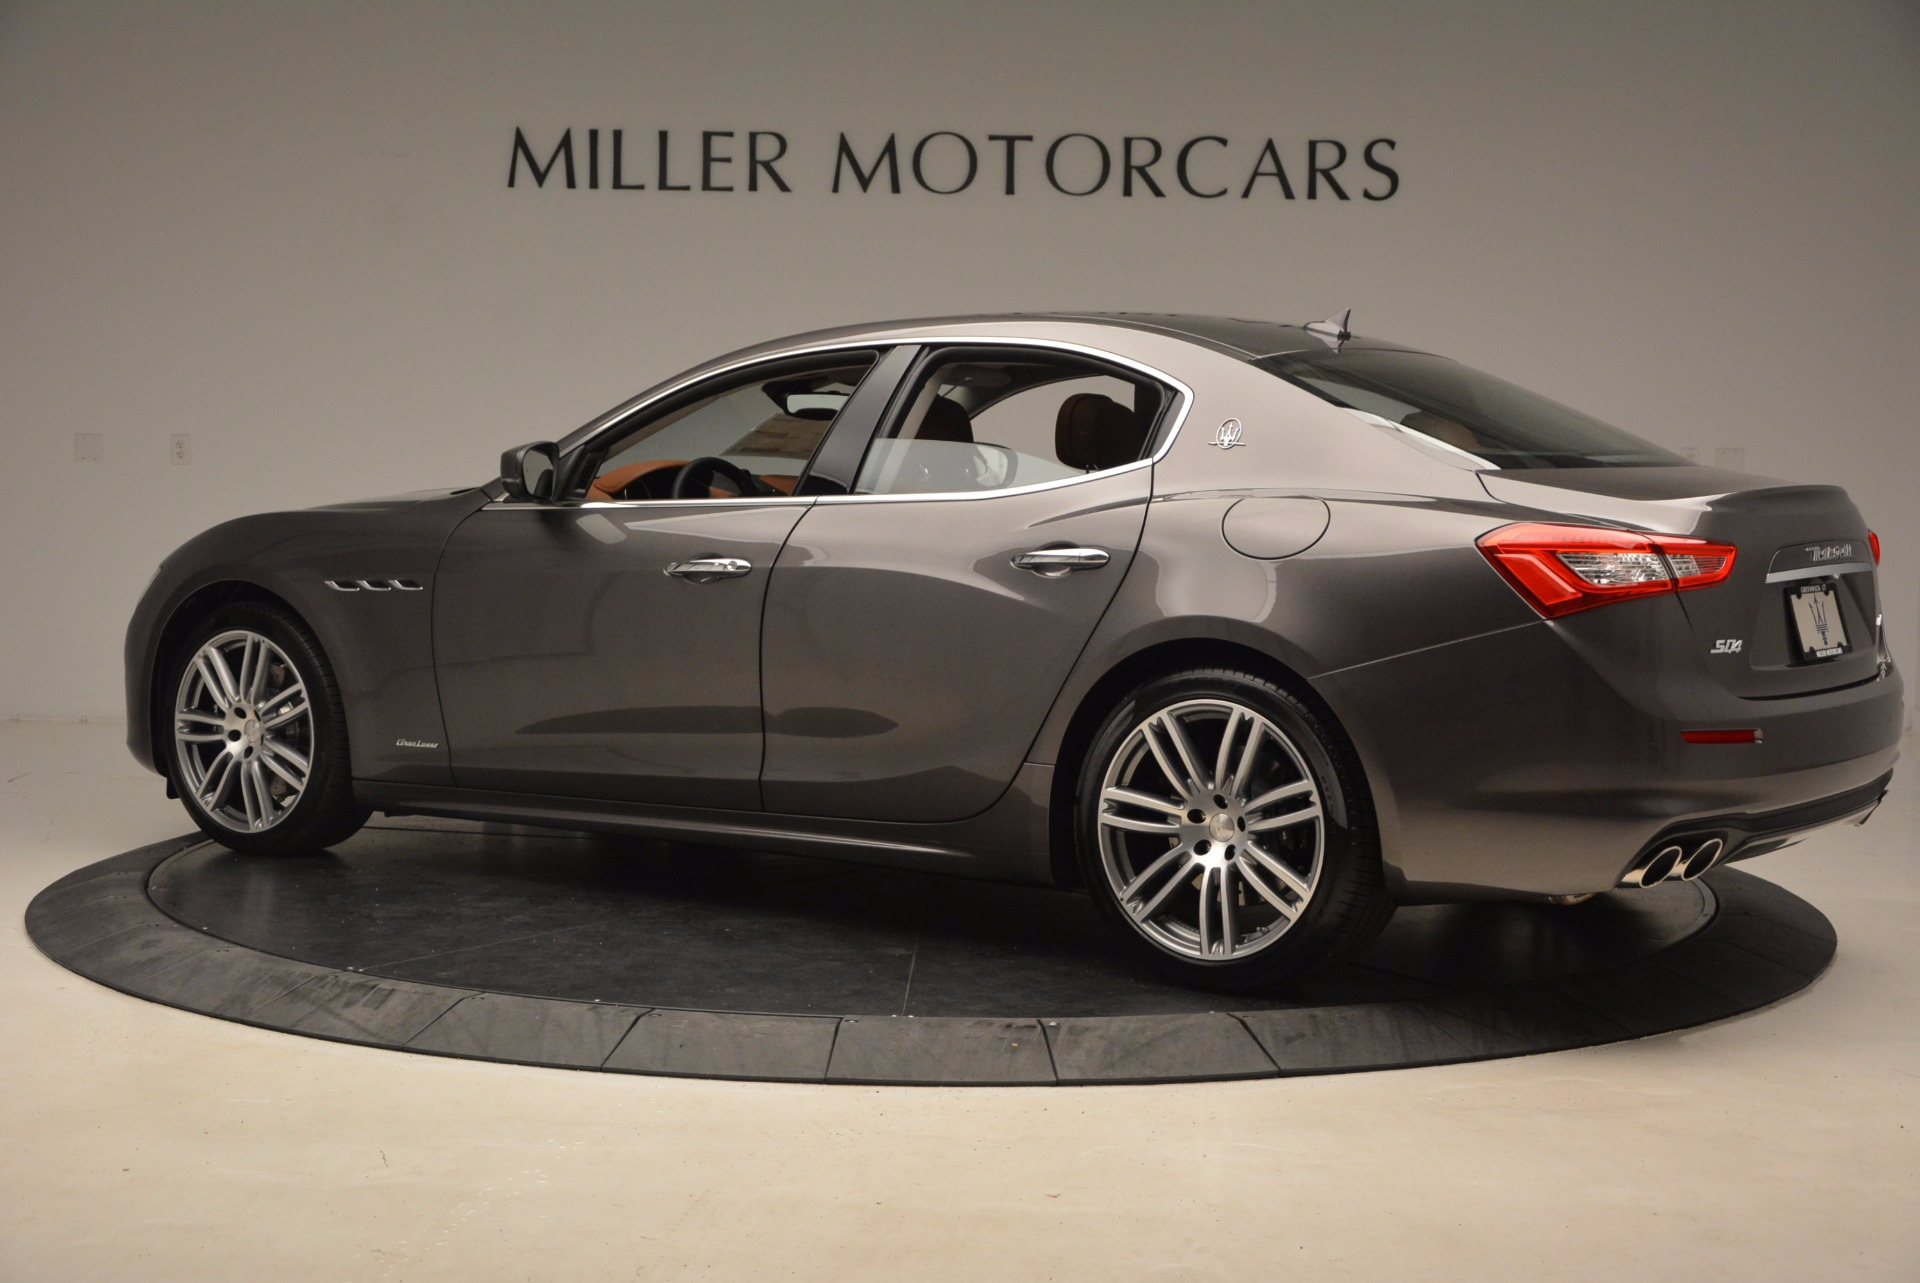 New 2018 Maserati Ghibli S Q4 GranLusso For Sale In Greenwich, CT. Alfa Romeo of Greenwich, M2005 1896_p4